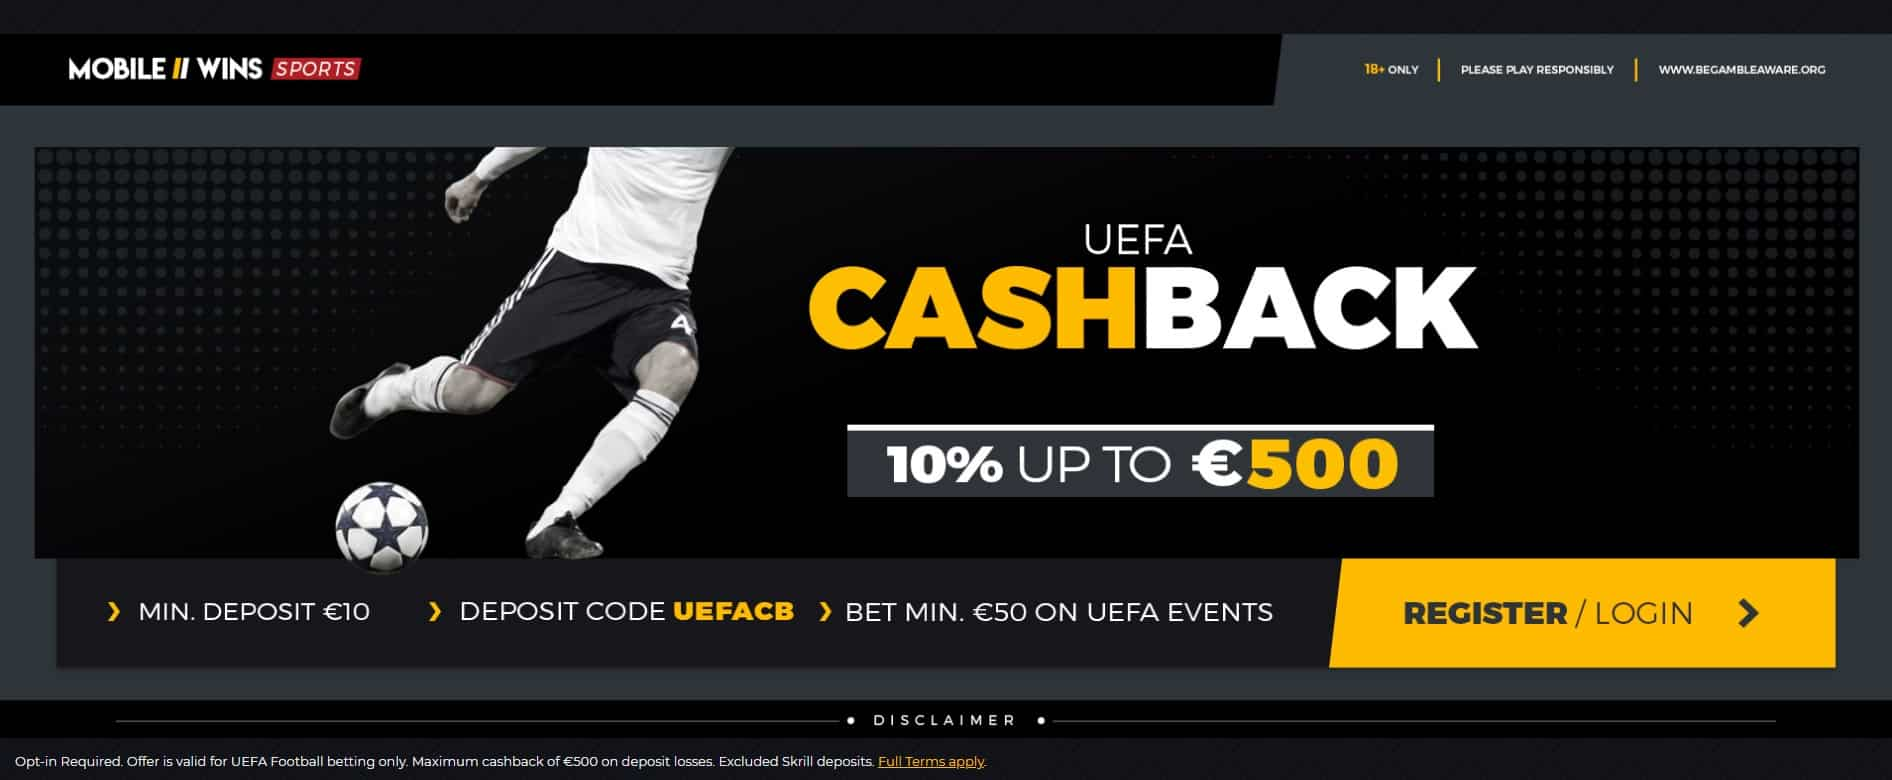 UEFA Cashback at Mobile Wins